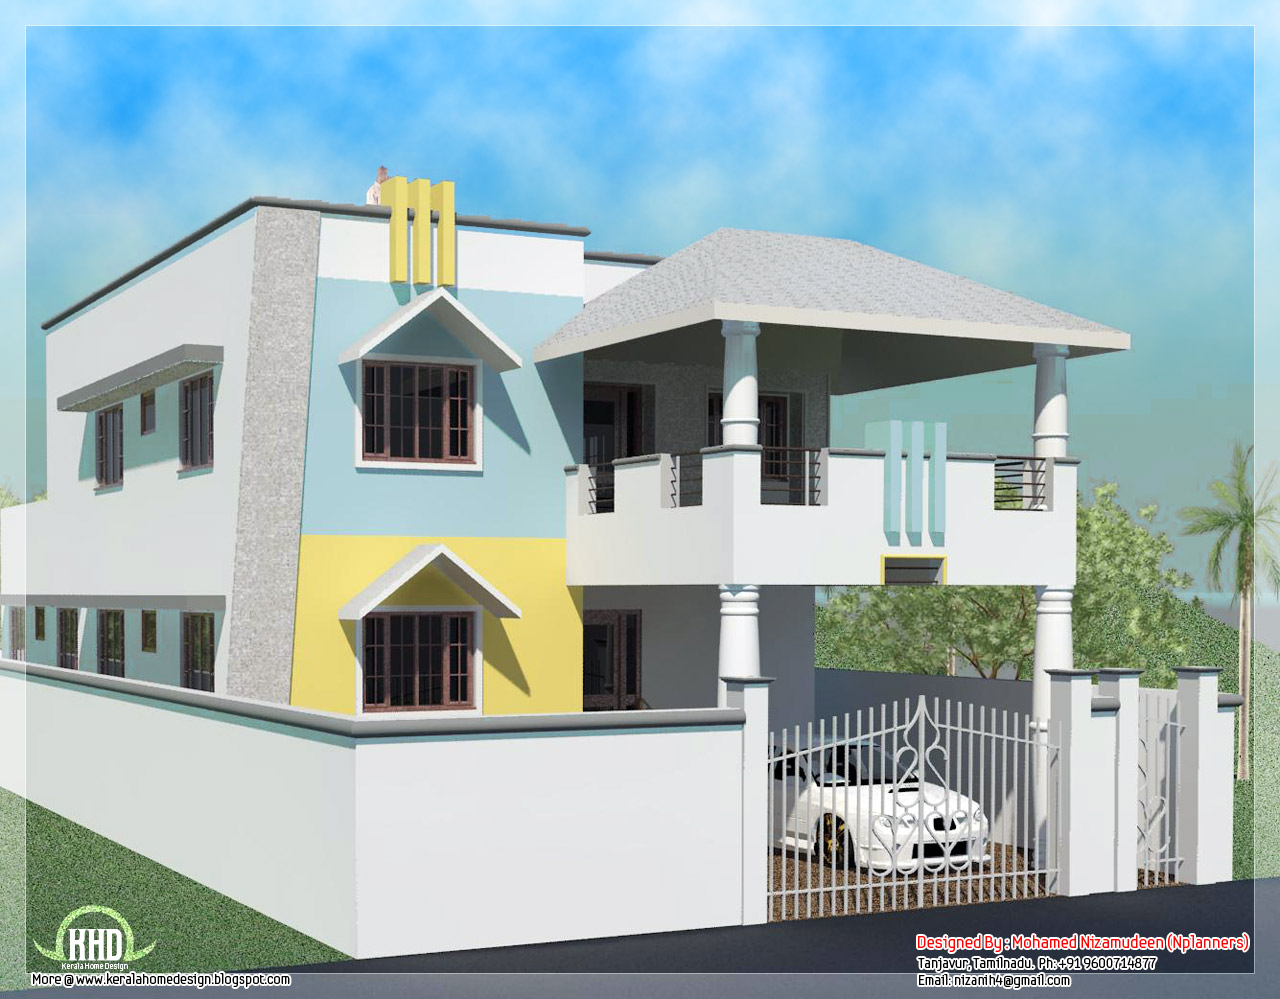 Tamil nadu house plan for Tamil nadu house plan